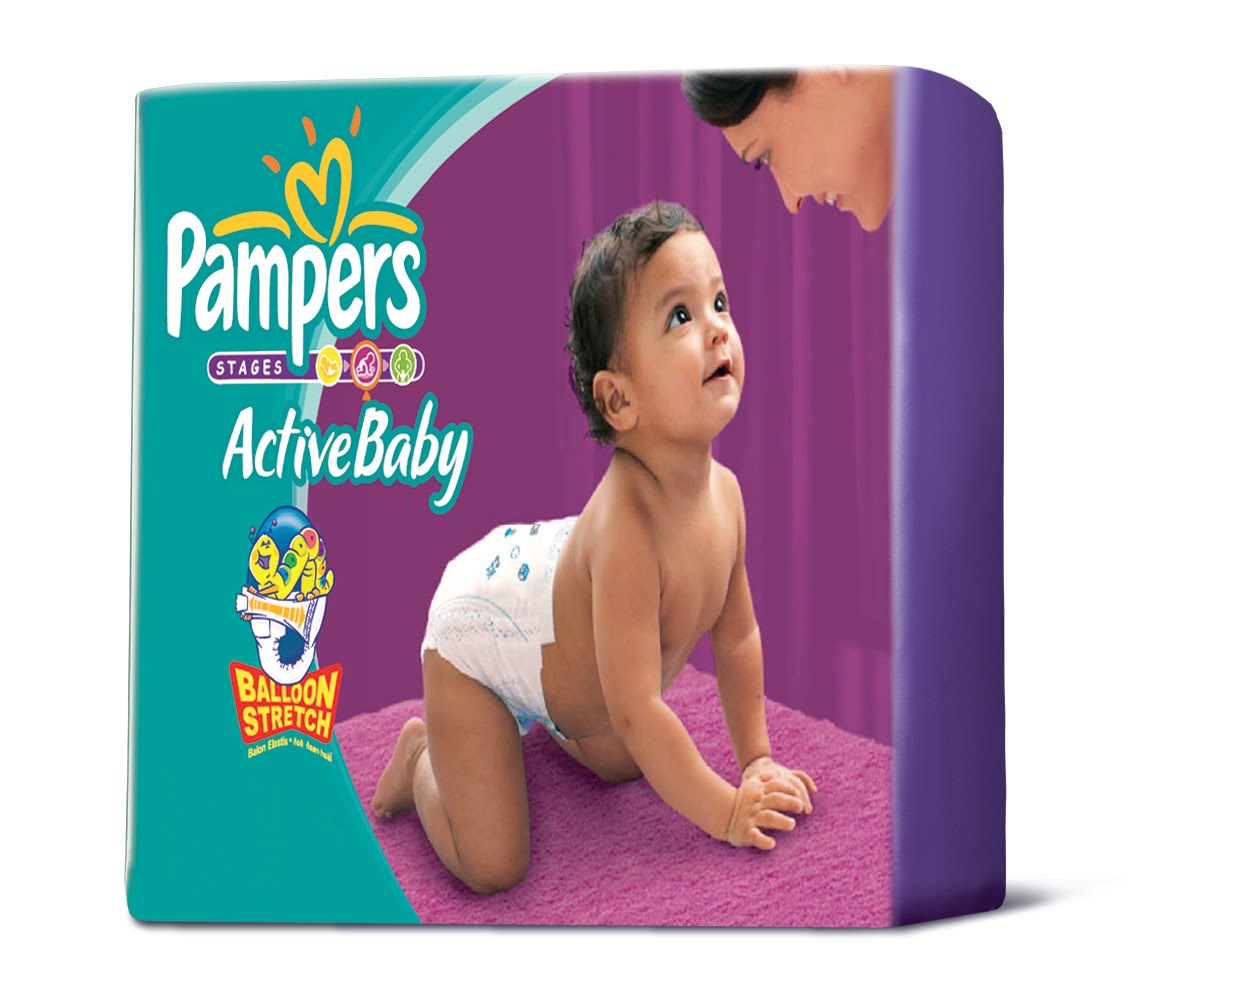 Pampers+Active+Baby+ +Product+Shot The homemade Kardashian sex tape which was supposed to stay private but ...